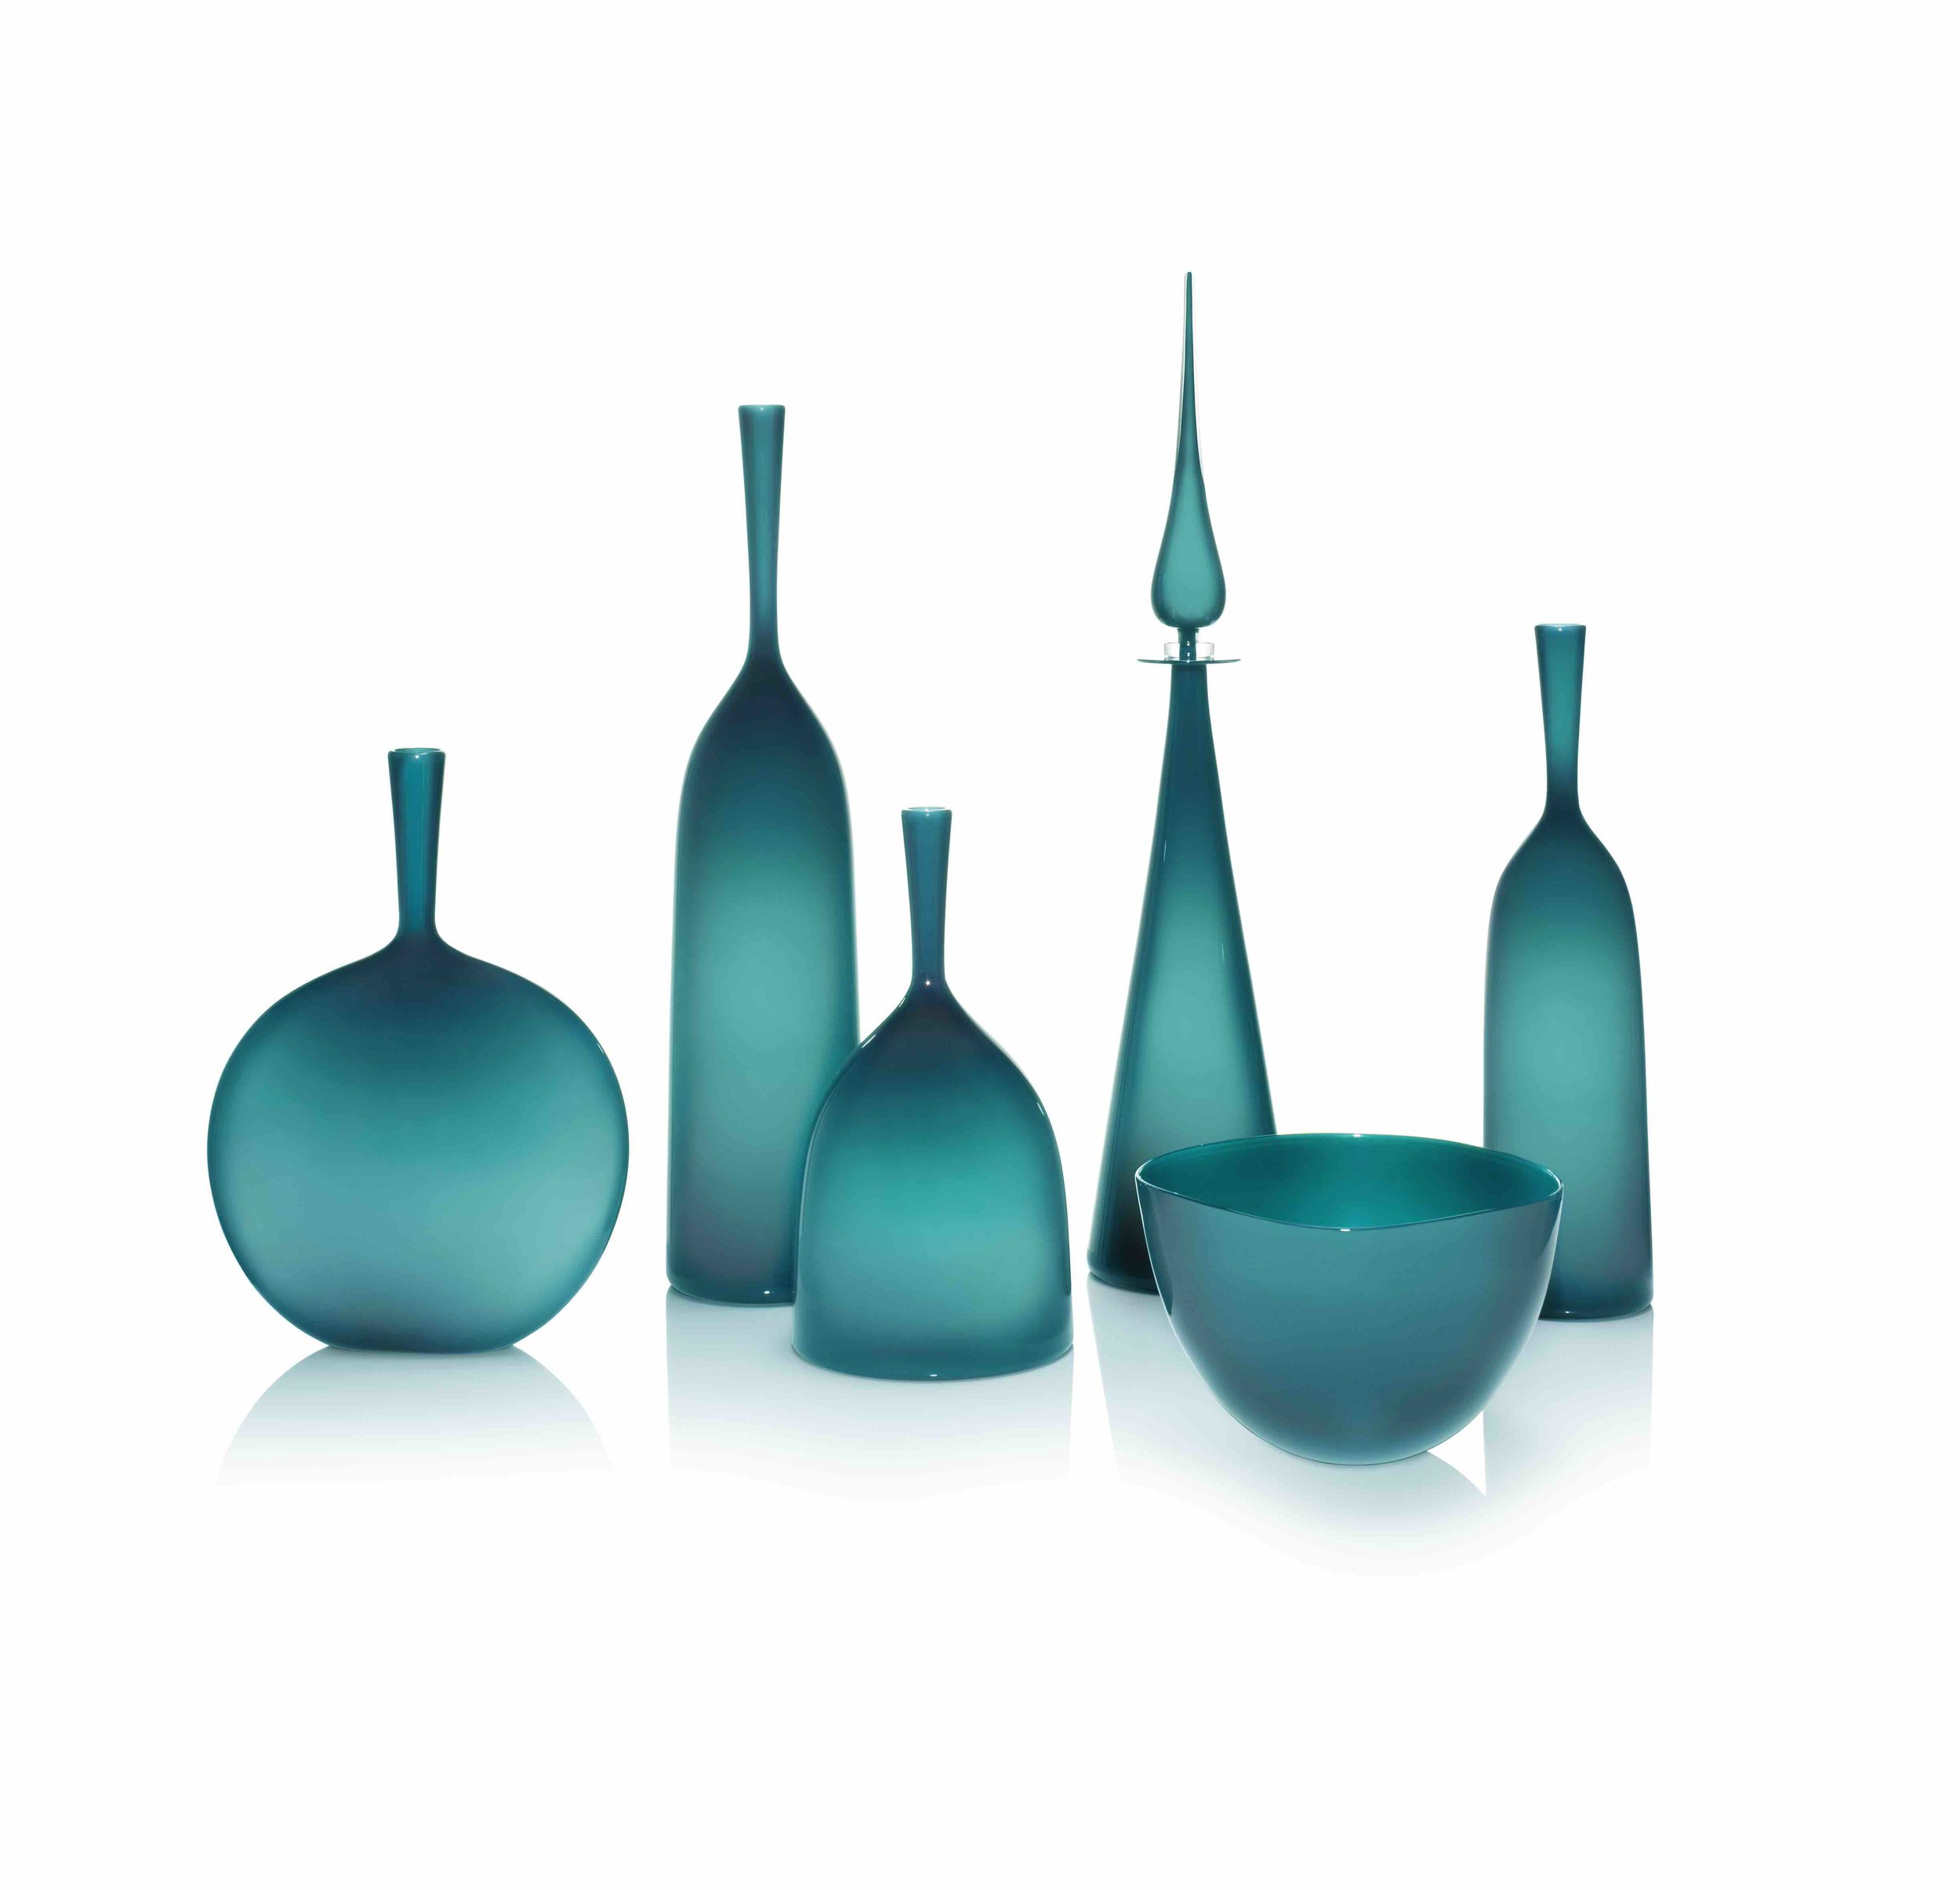 AZURE GROUPING: ANGELIC FLASK, LARGE, WIDE, PETITE DECANTER STRAIGHT CONE, ANGELIC VESSEL BOWL, SMALL ANGELIC BOTTLE